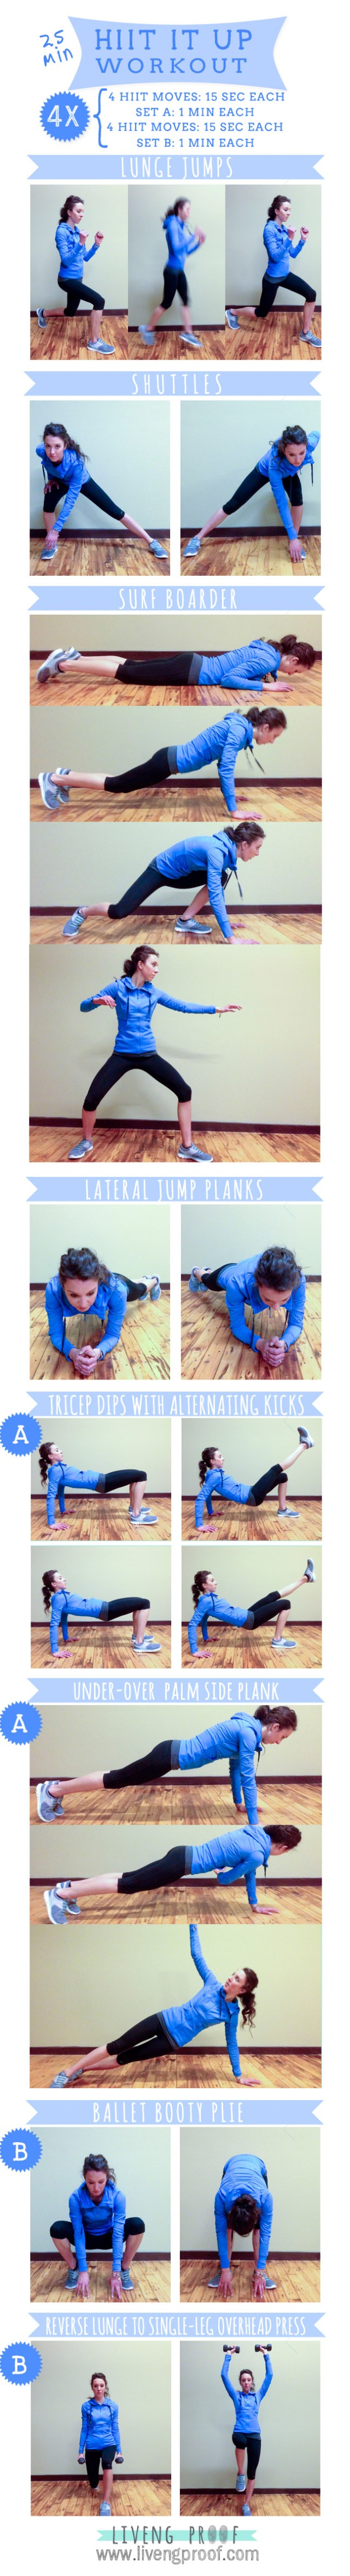 25 min HIIT It Up Workout